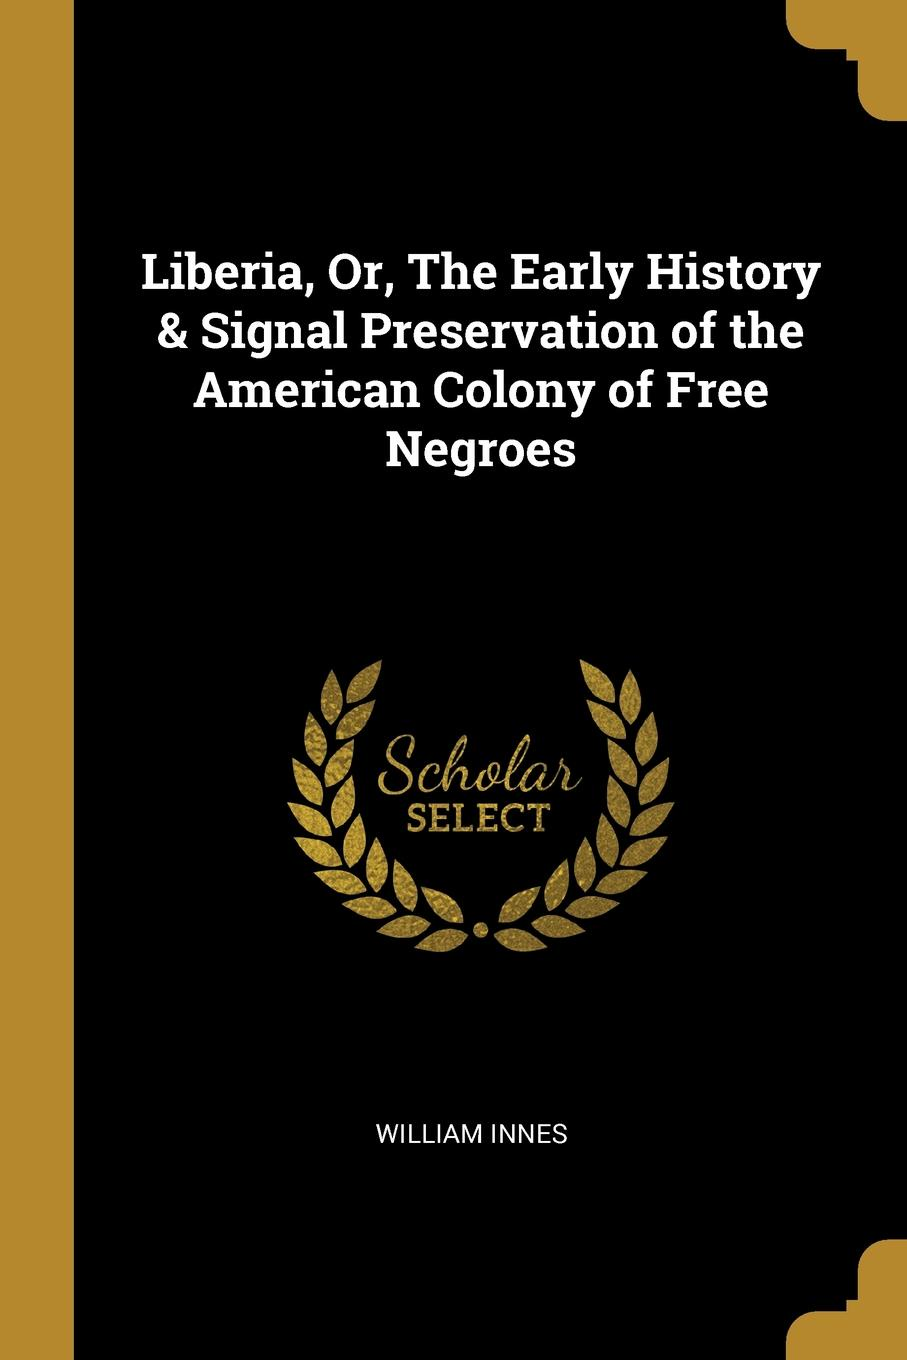 William Innes. Liberia, Or, The Early History . Signal Preservation of the American Colony of Free Negroes